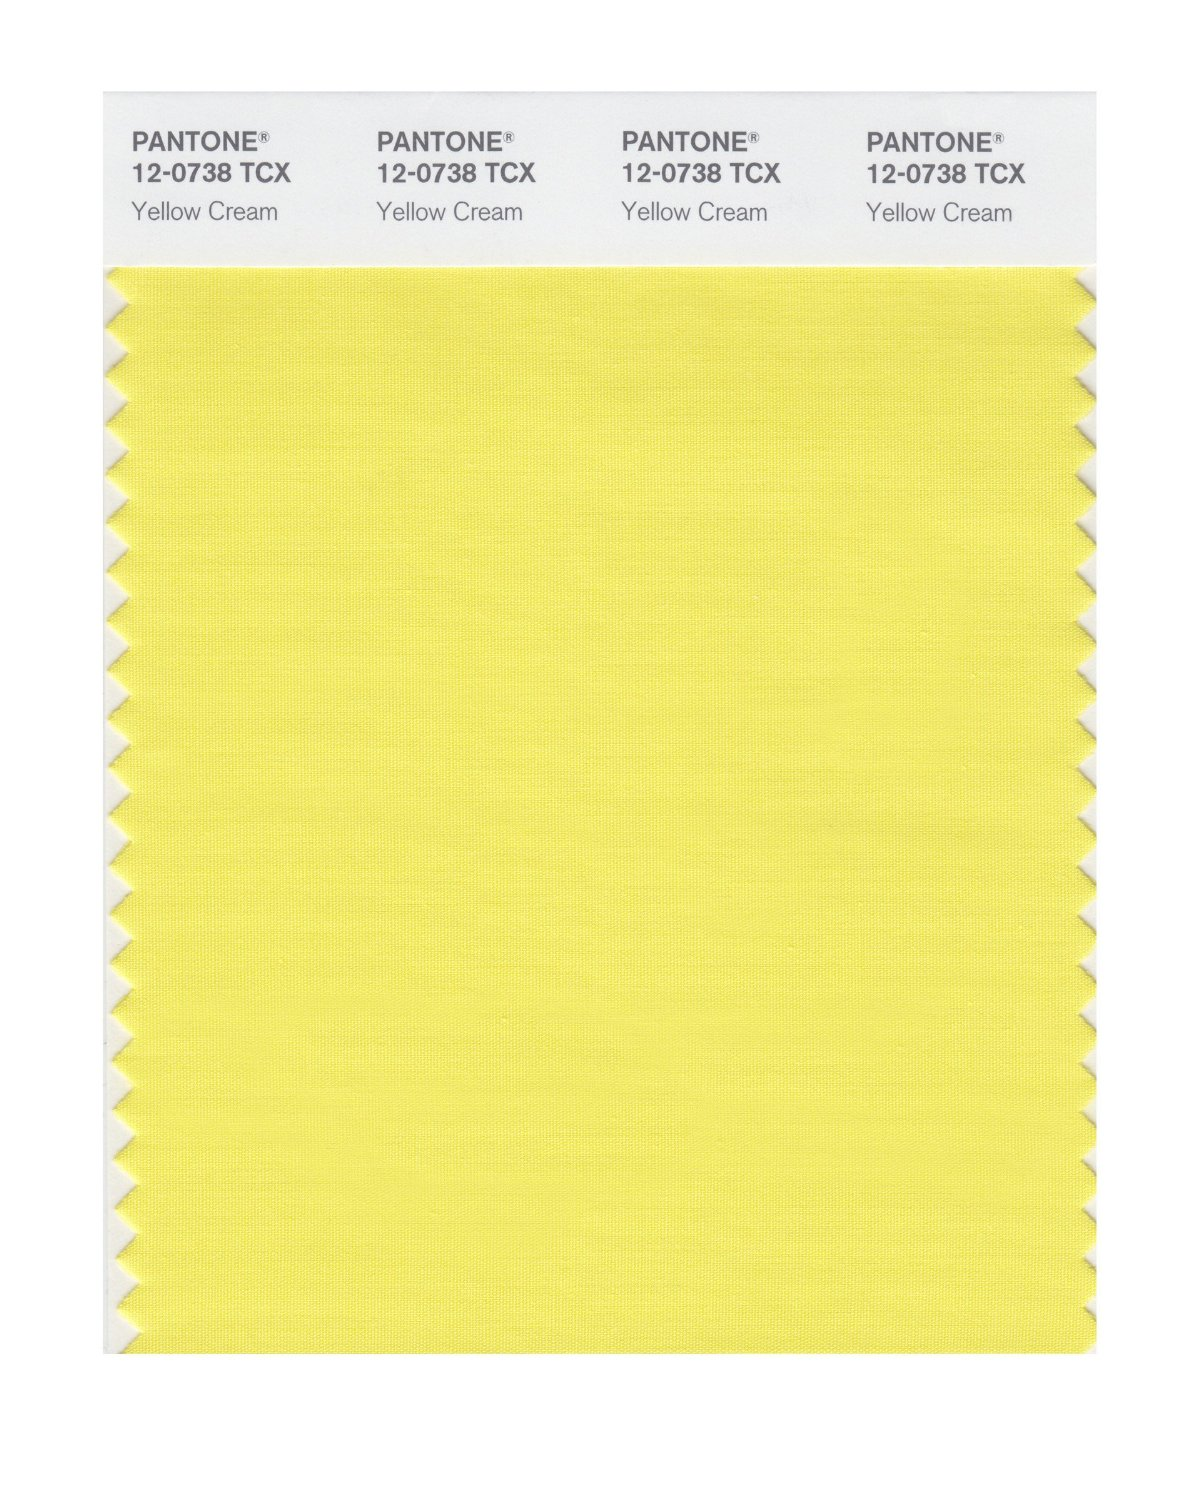 Pantone Smart Swatch 12-0738 Yellow Cream